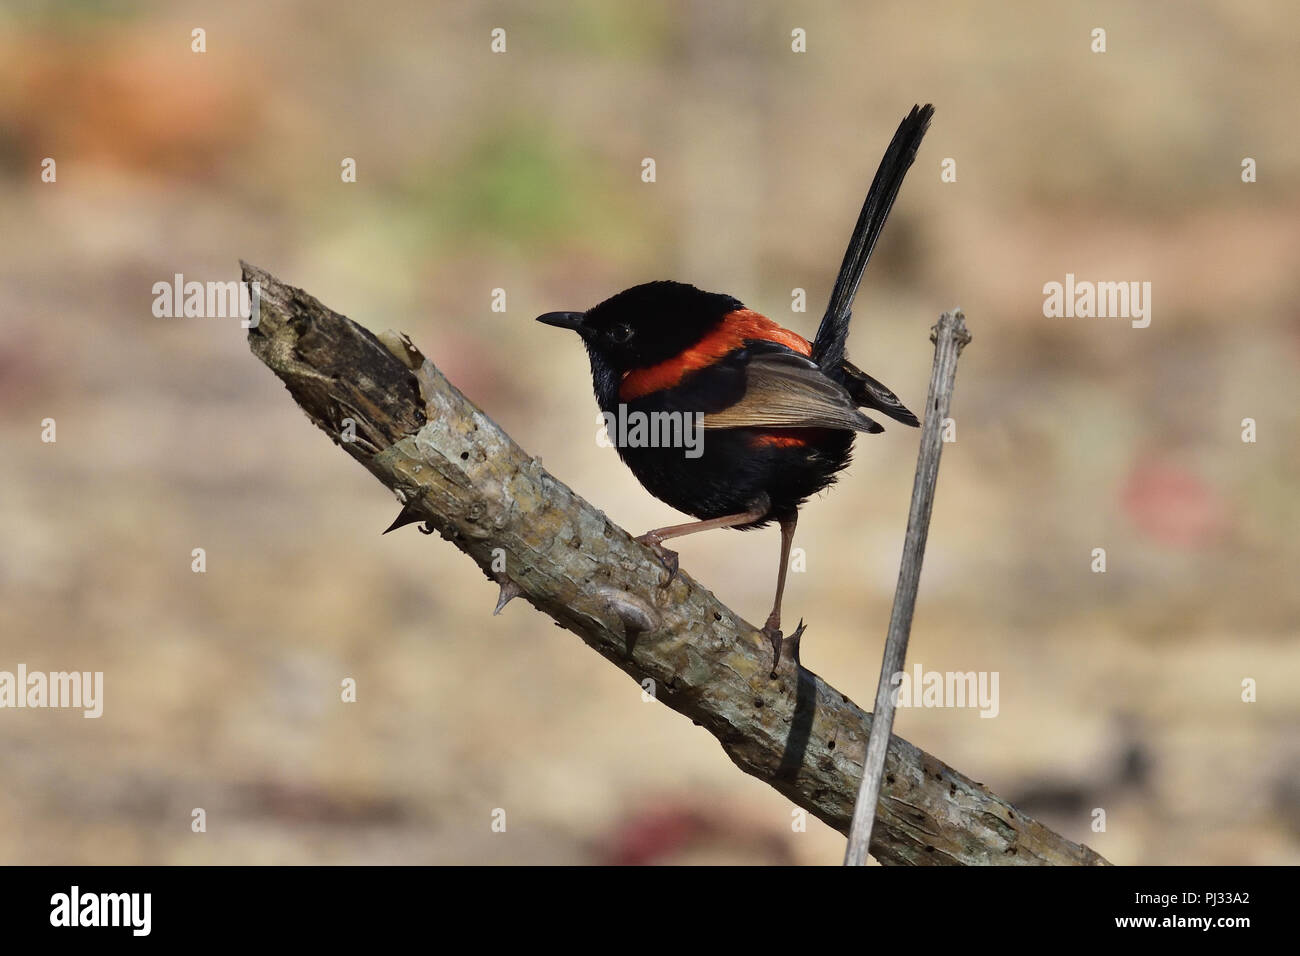 An Australian, Queensland Male Red-backed Fairy-wren ( Malurus melanocephalus ) perched on a tree - Stock Image